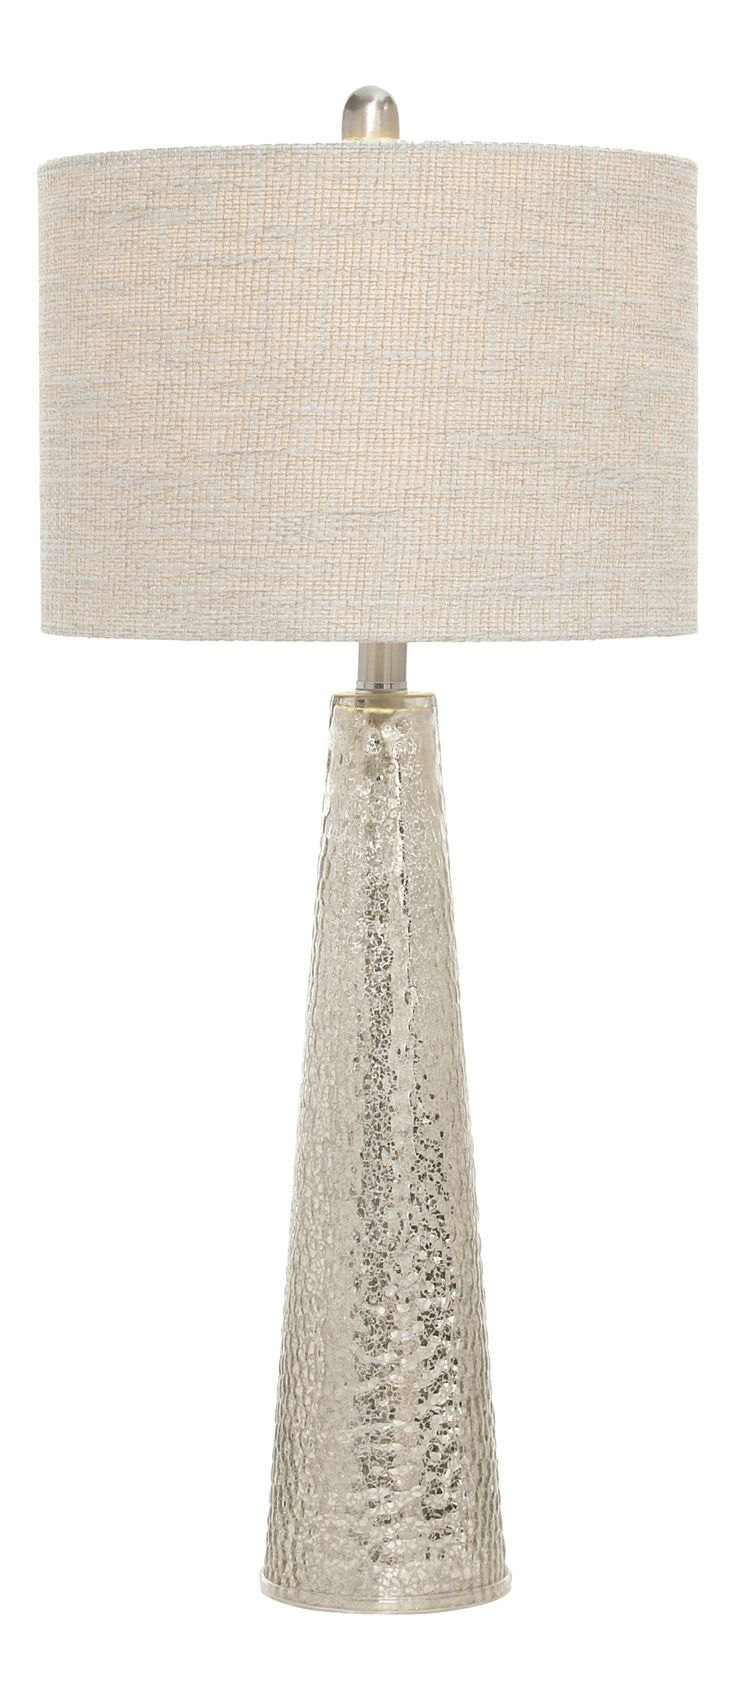 Casa cortes lush mosaic art glass 25 inch table lamps set of 2 - Alchemy 29 H Table Lamp With Drum Shade